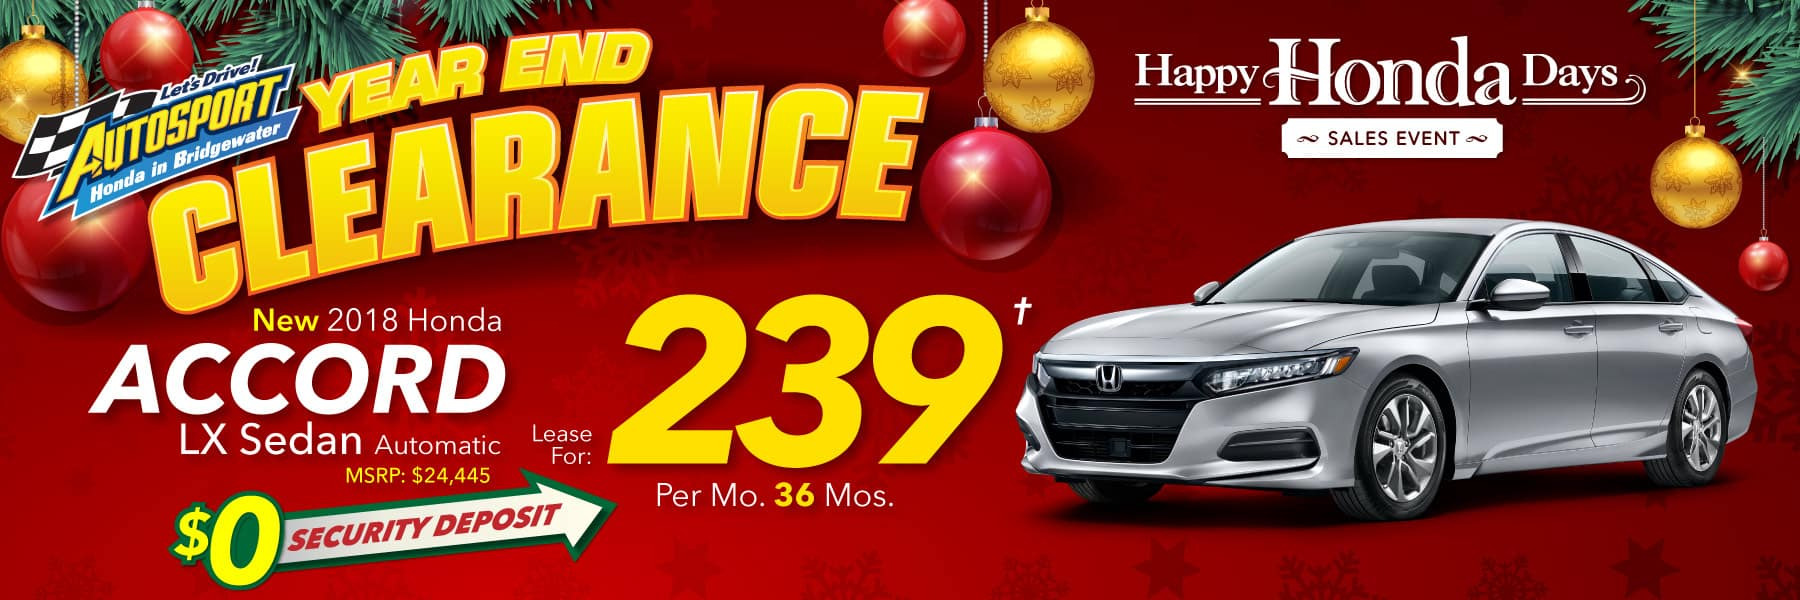 We offer a variety of Honda service specials for those needing to stay within a certain budget. Our specials change often to fit the needs of our drivers to be sure to check back if you don't find one that works for you. If you are in need of new replacement parts for your current car, check out our Honda parts specials for extra.